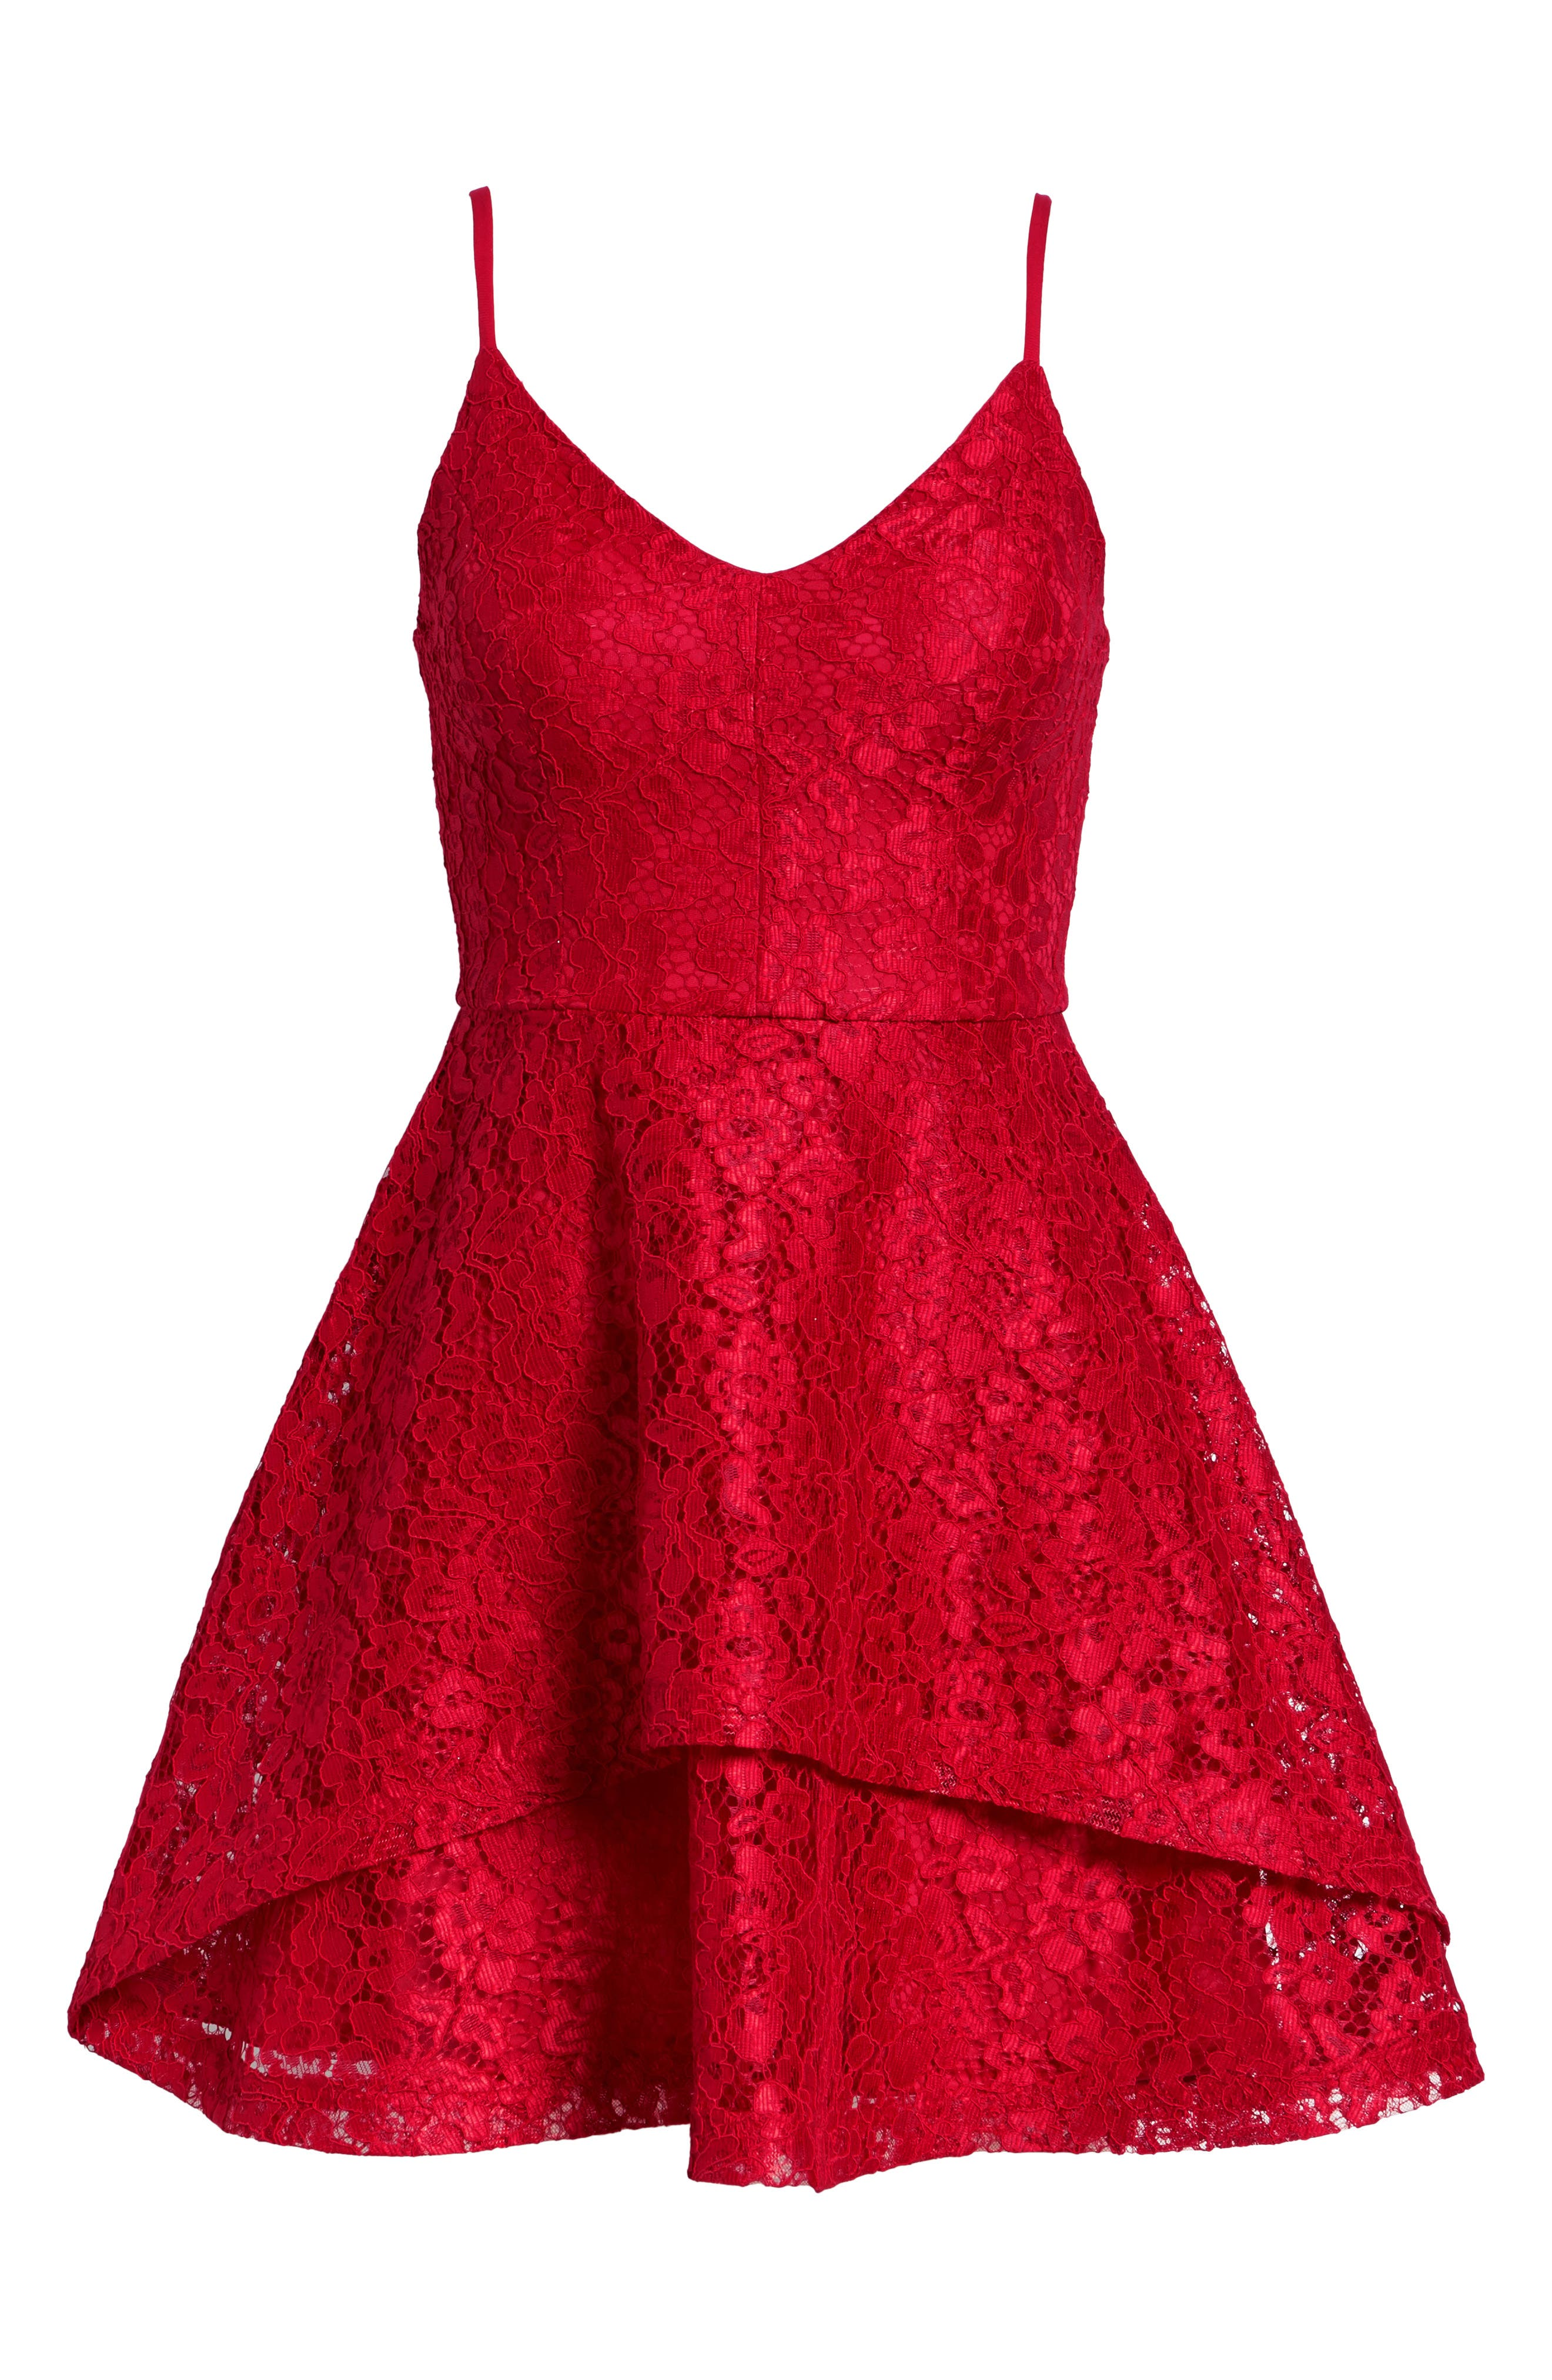 SPEECHLESS, Lace Fit & Flare Dress, Alternate thumbnail 8, color, 600